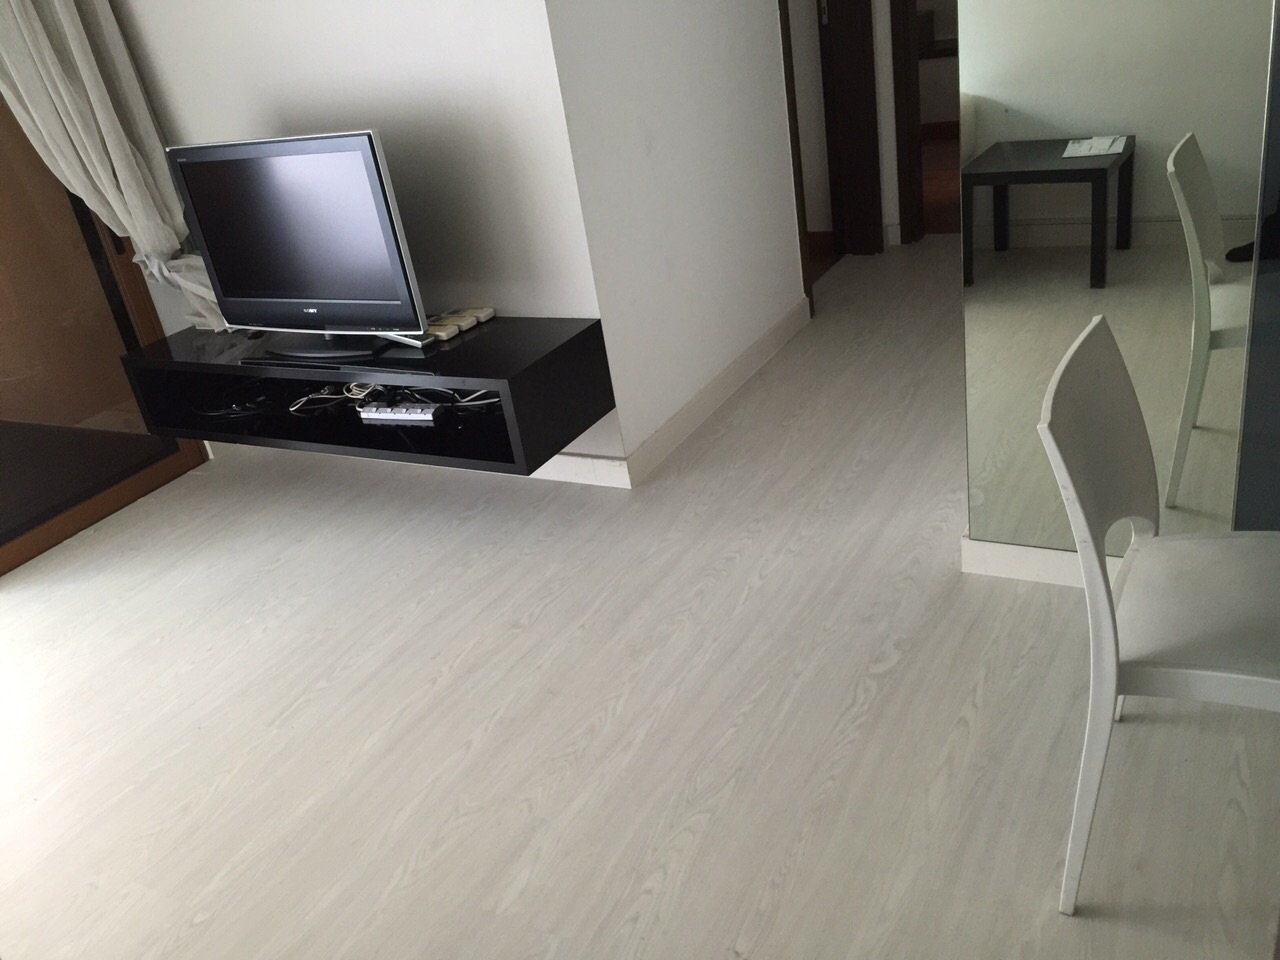 What To Know About Resilient Flooring In Singapore